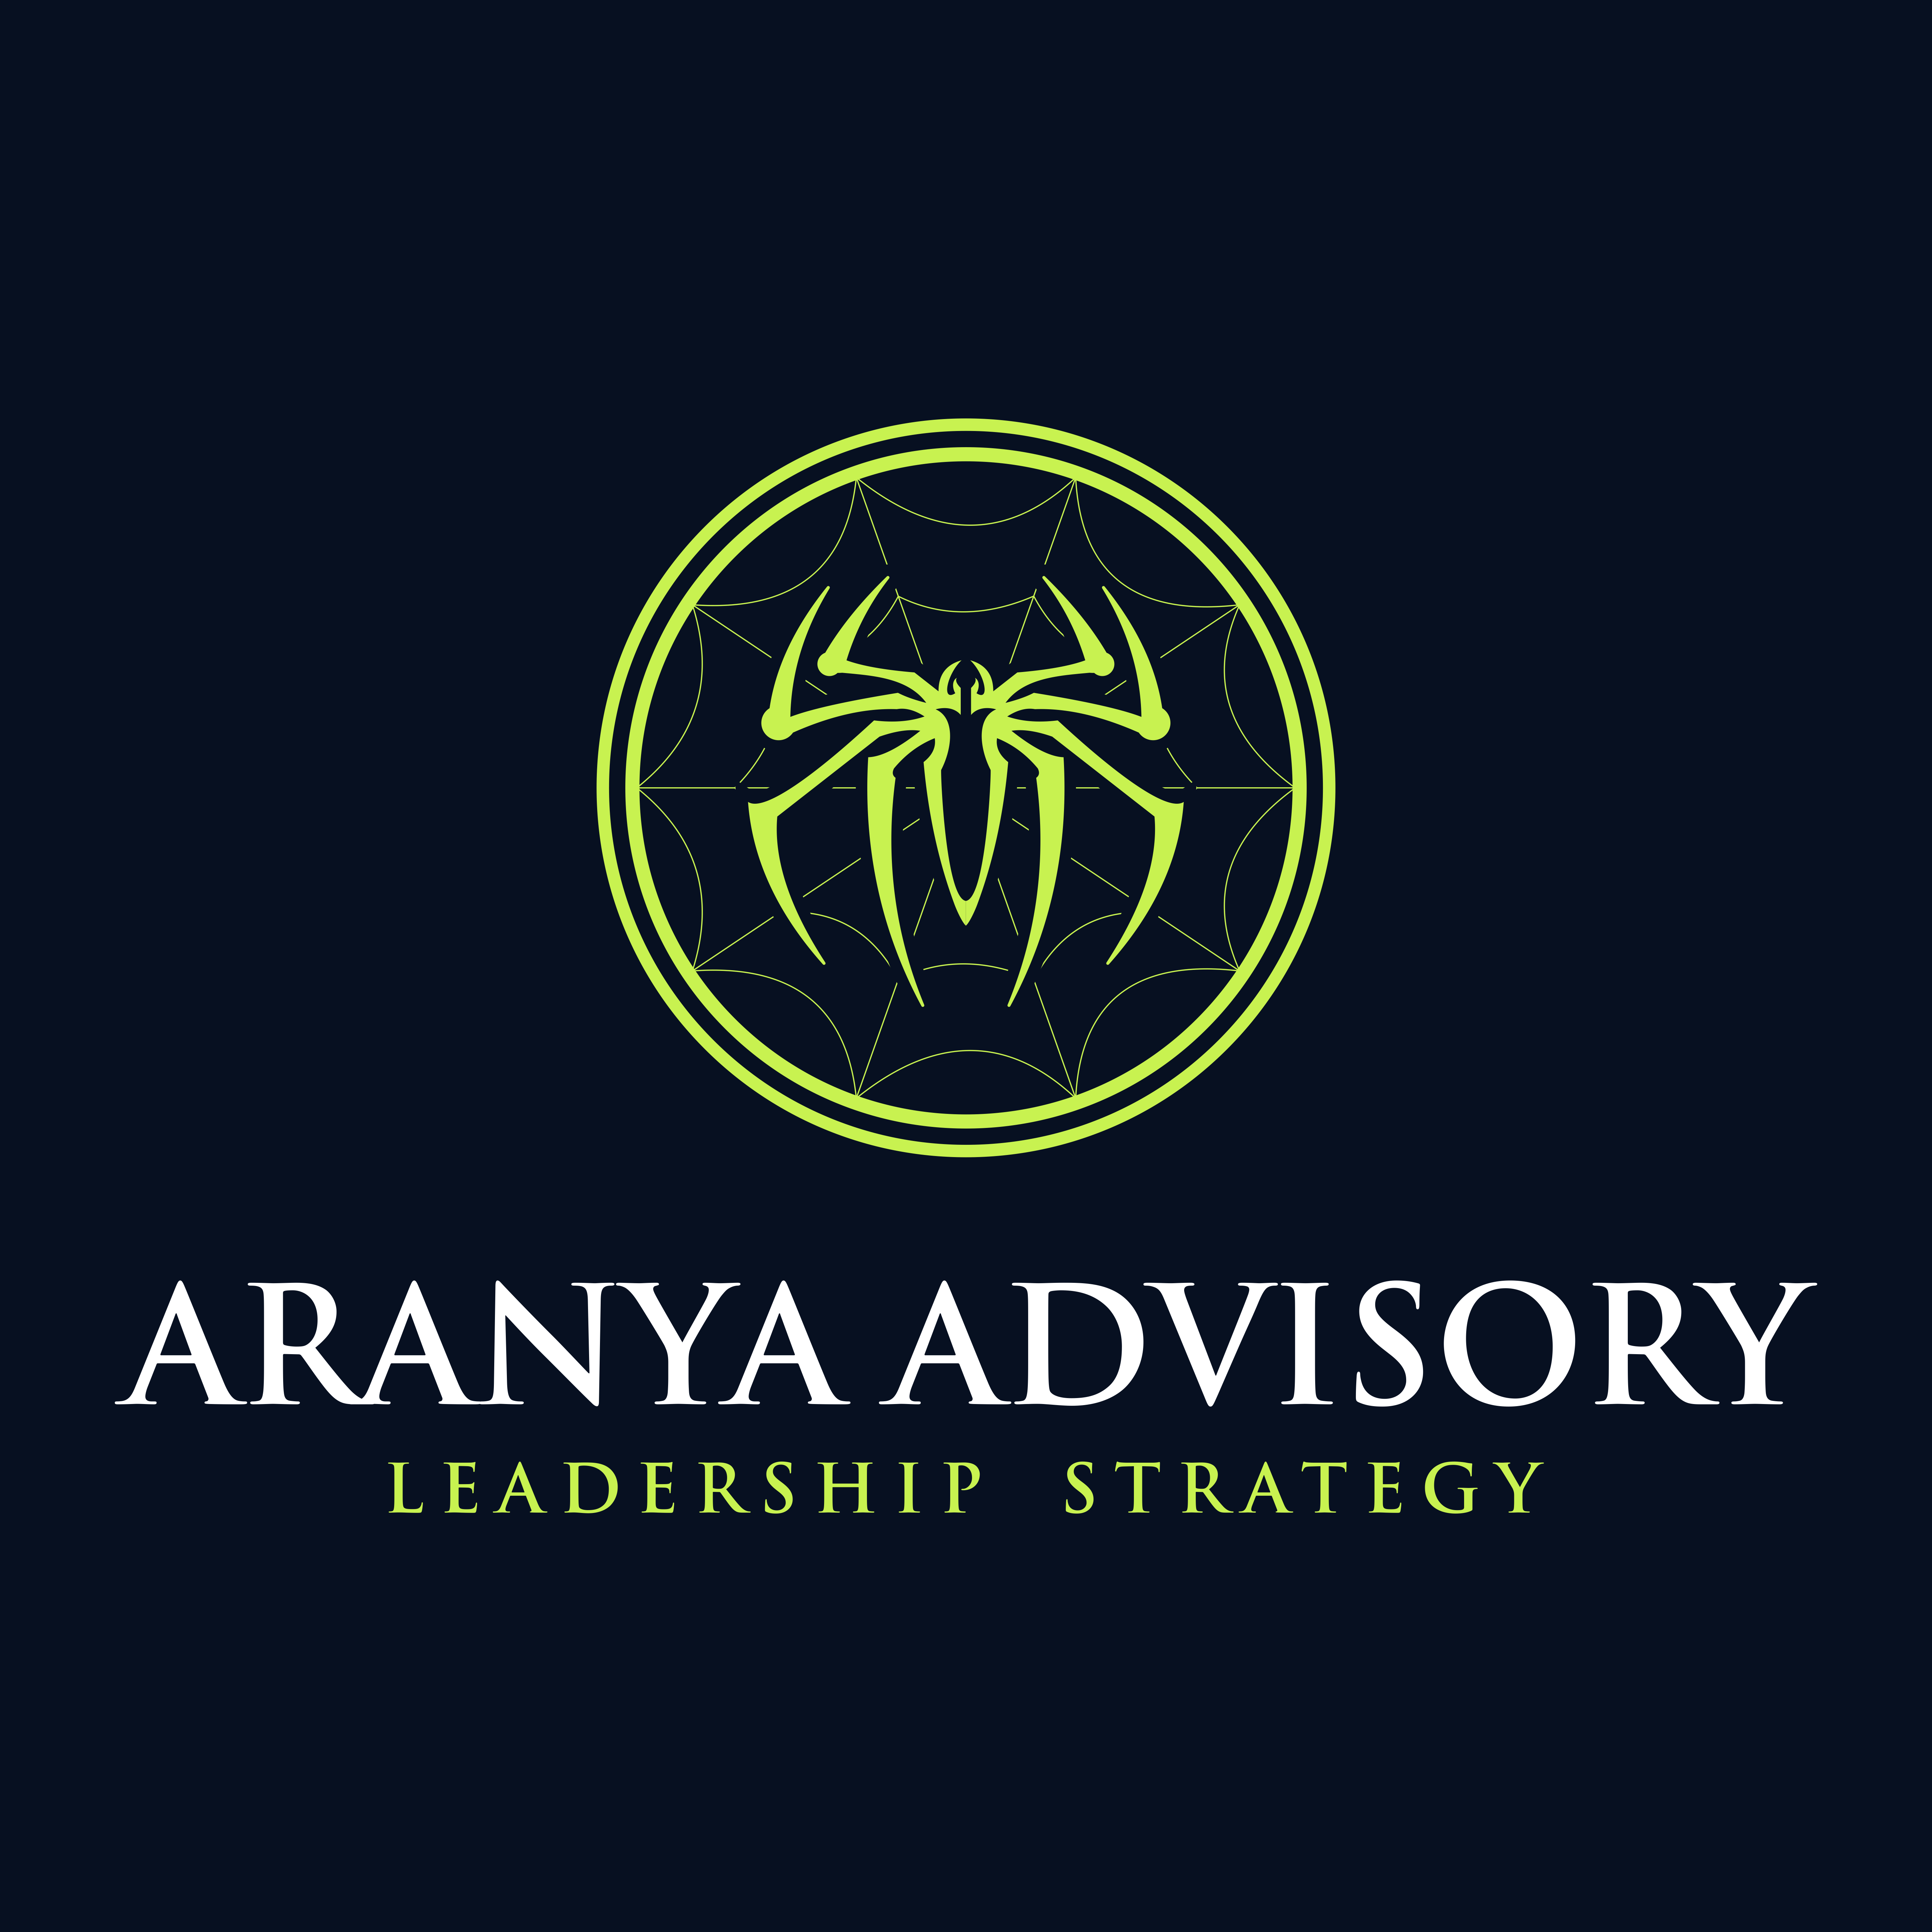 The Logo of Aranya Advisory. Our mission is to help small companies build a competitive advantage